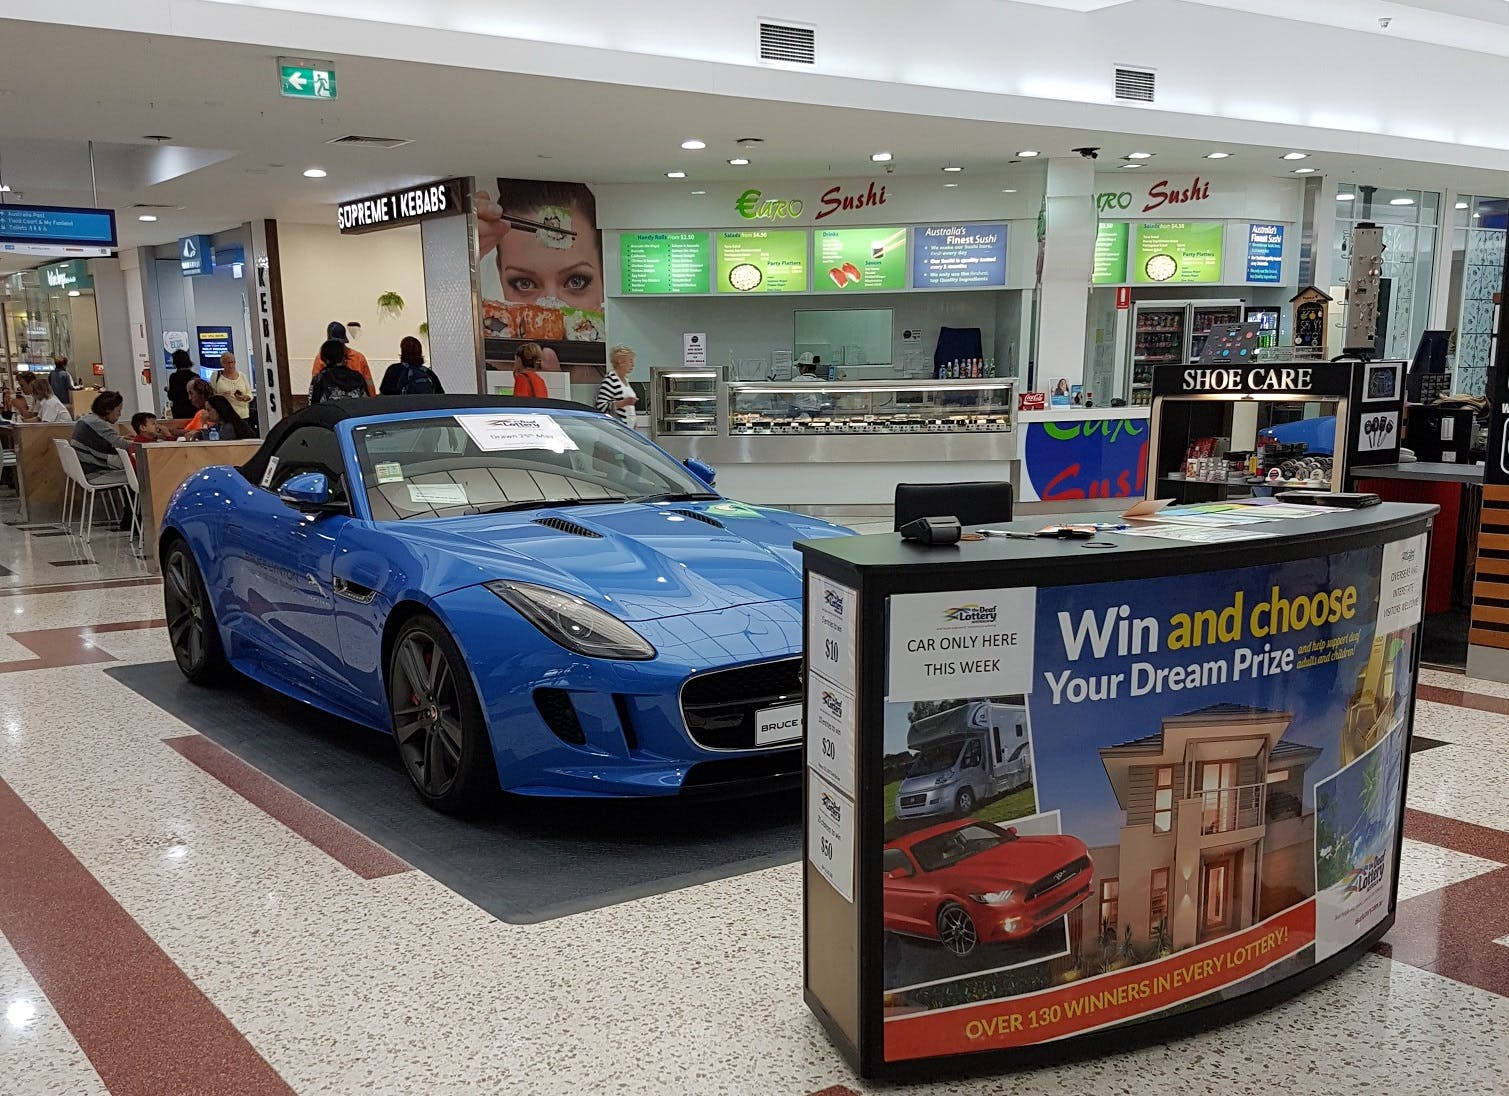 Pop-up shop at Stockland Burleigh Heads, image 1